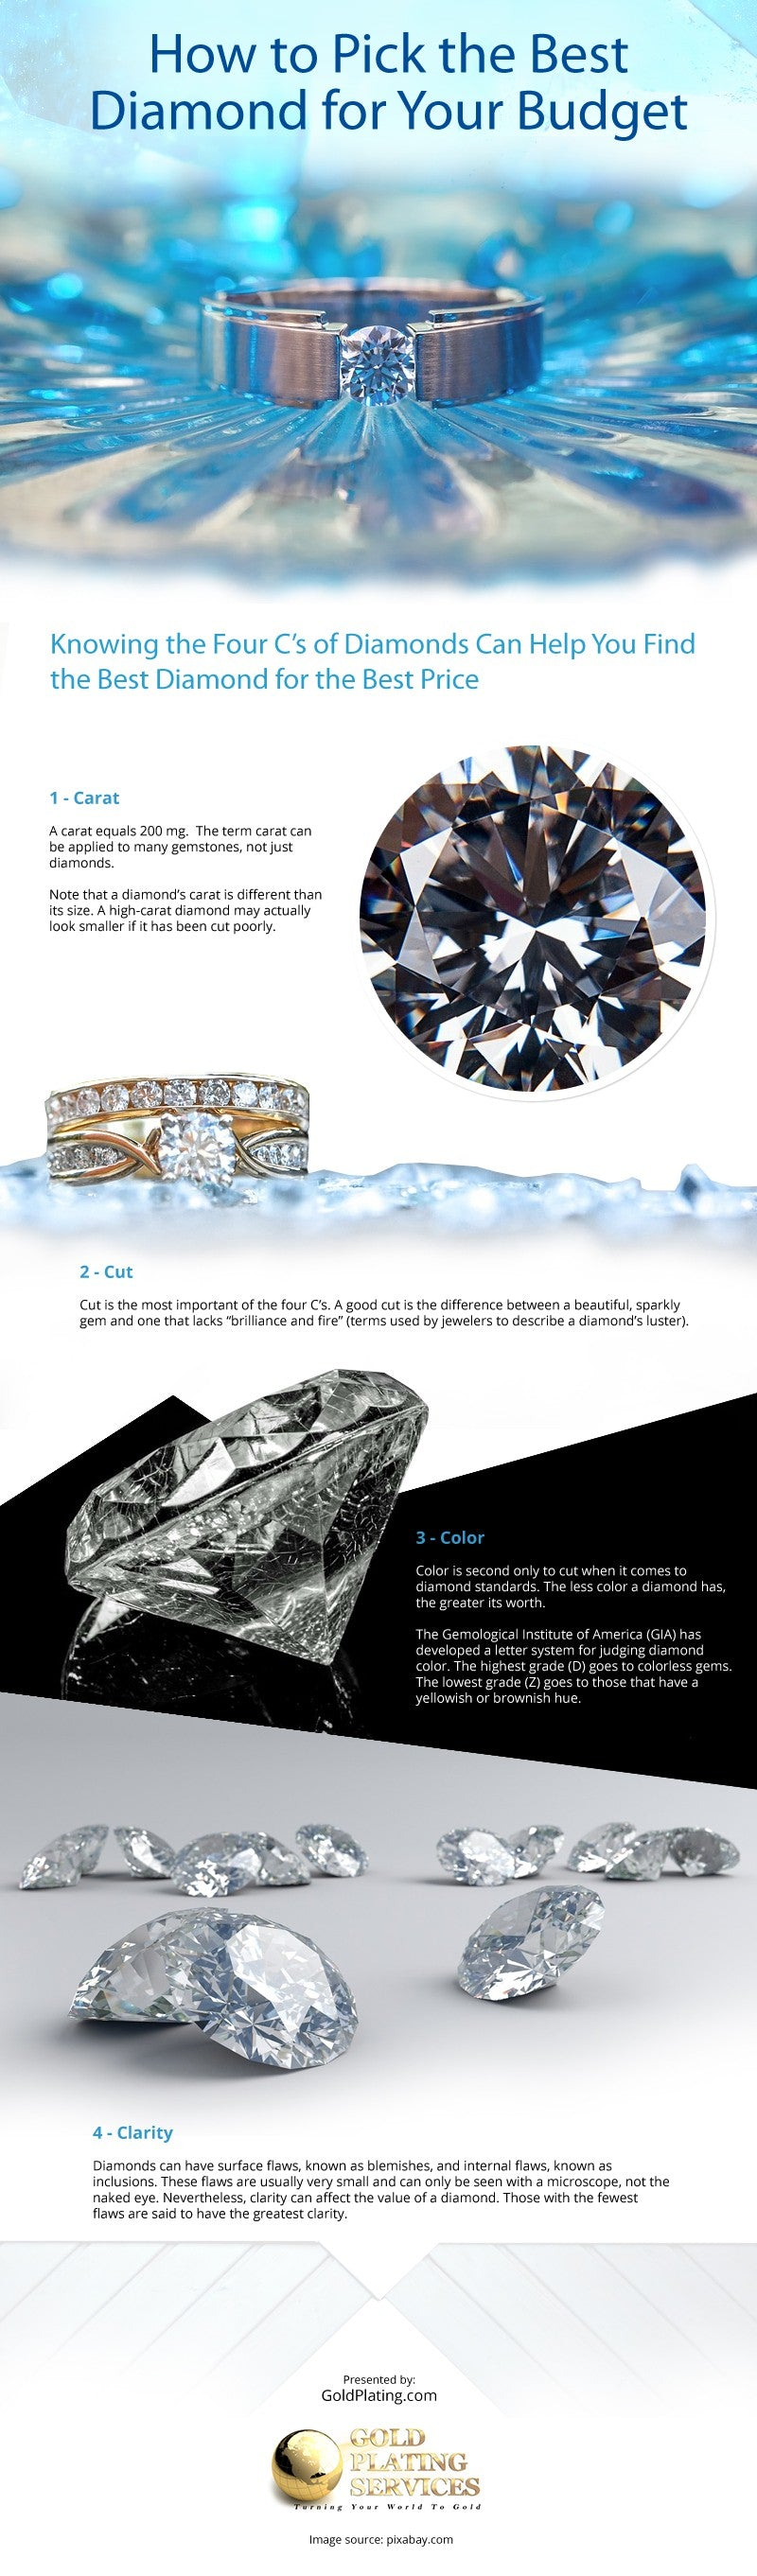 How to Pick the Best Diamond for your Budget [infographic]